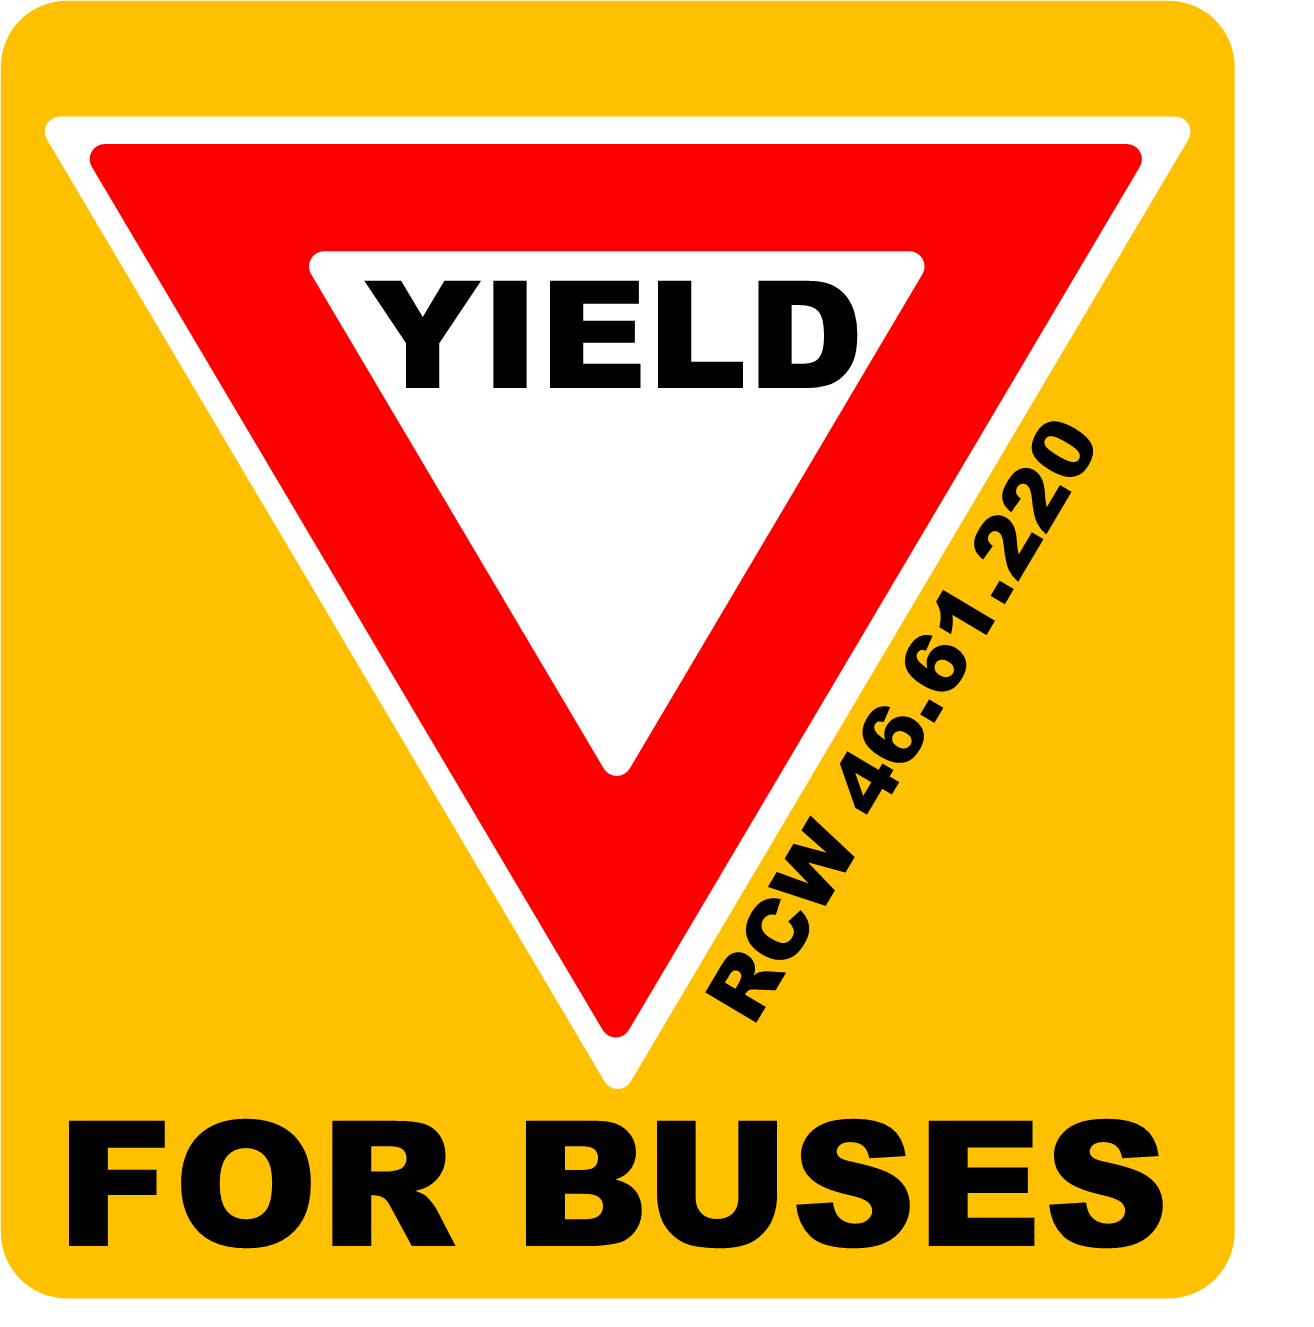 Yield to Buses